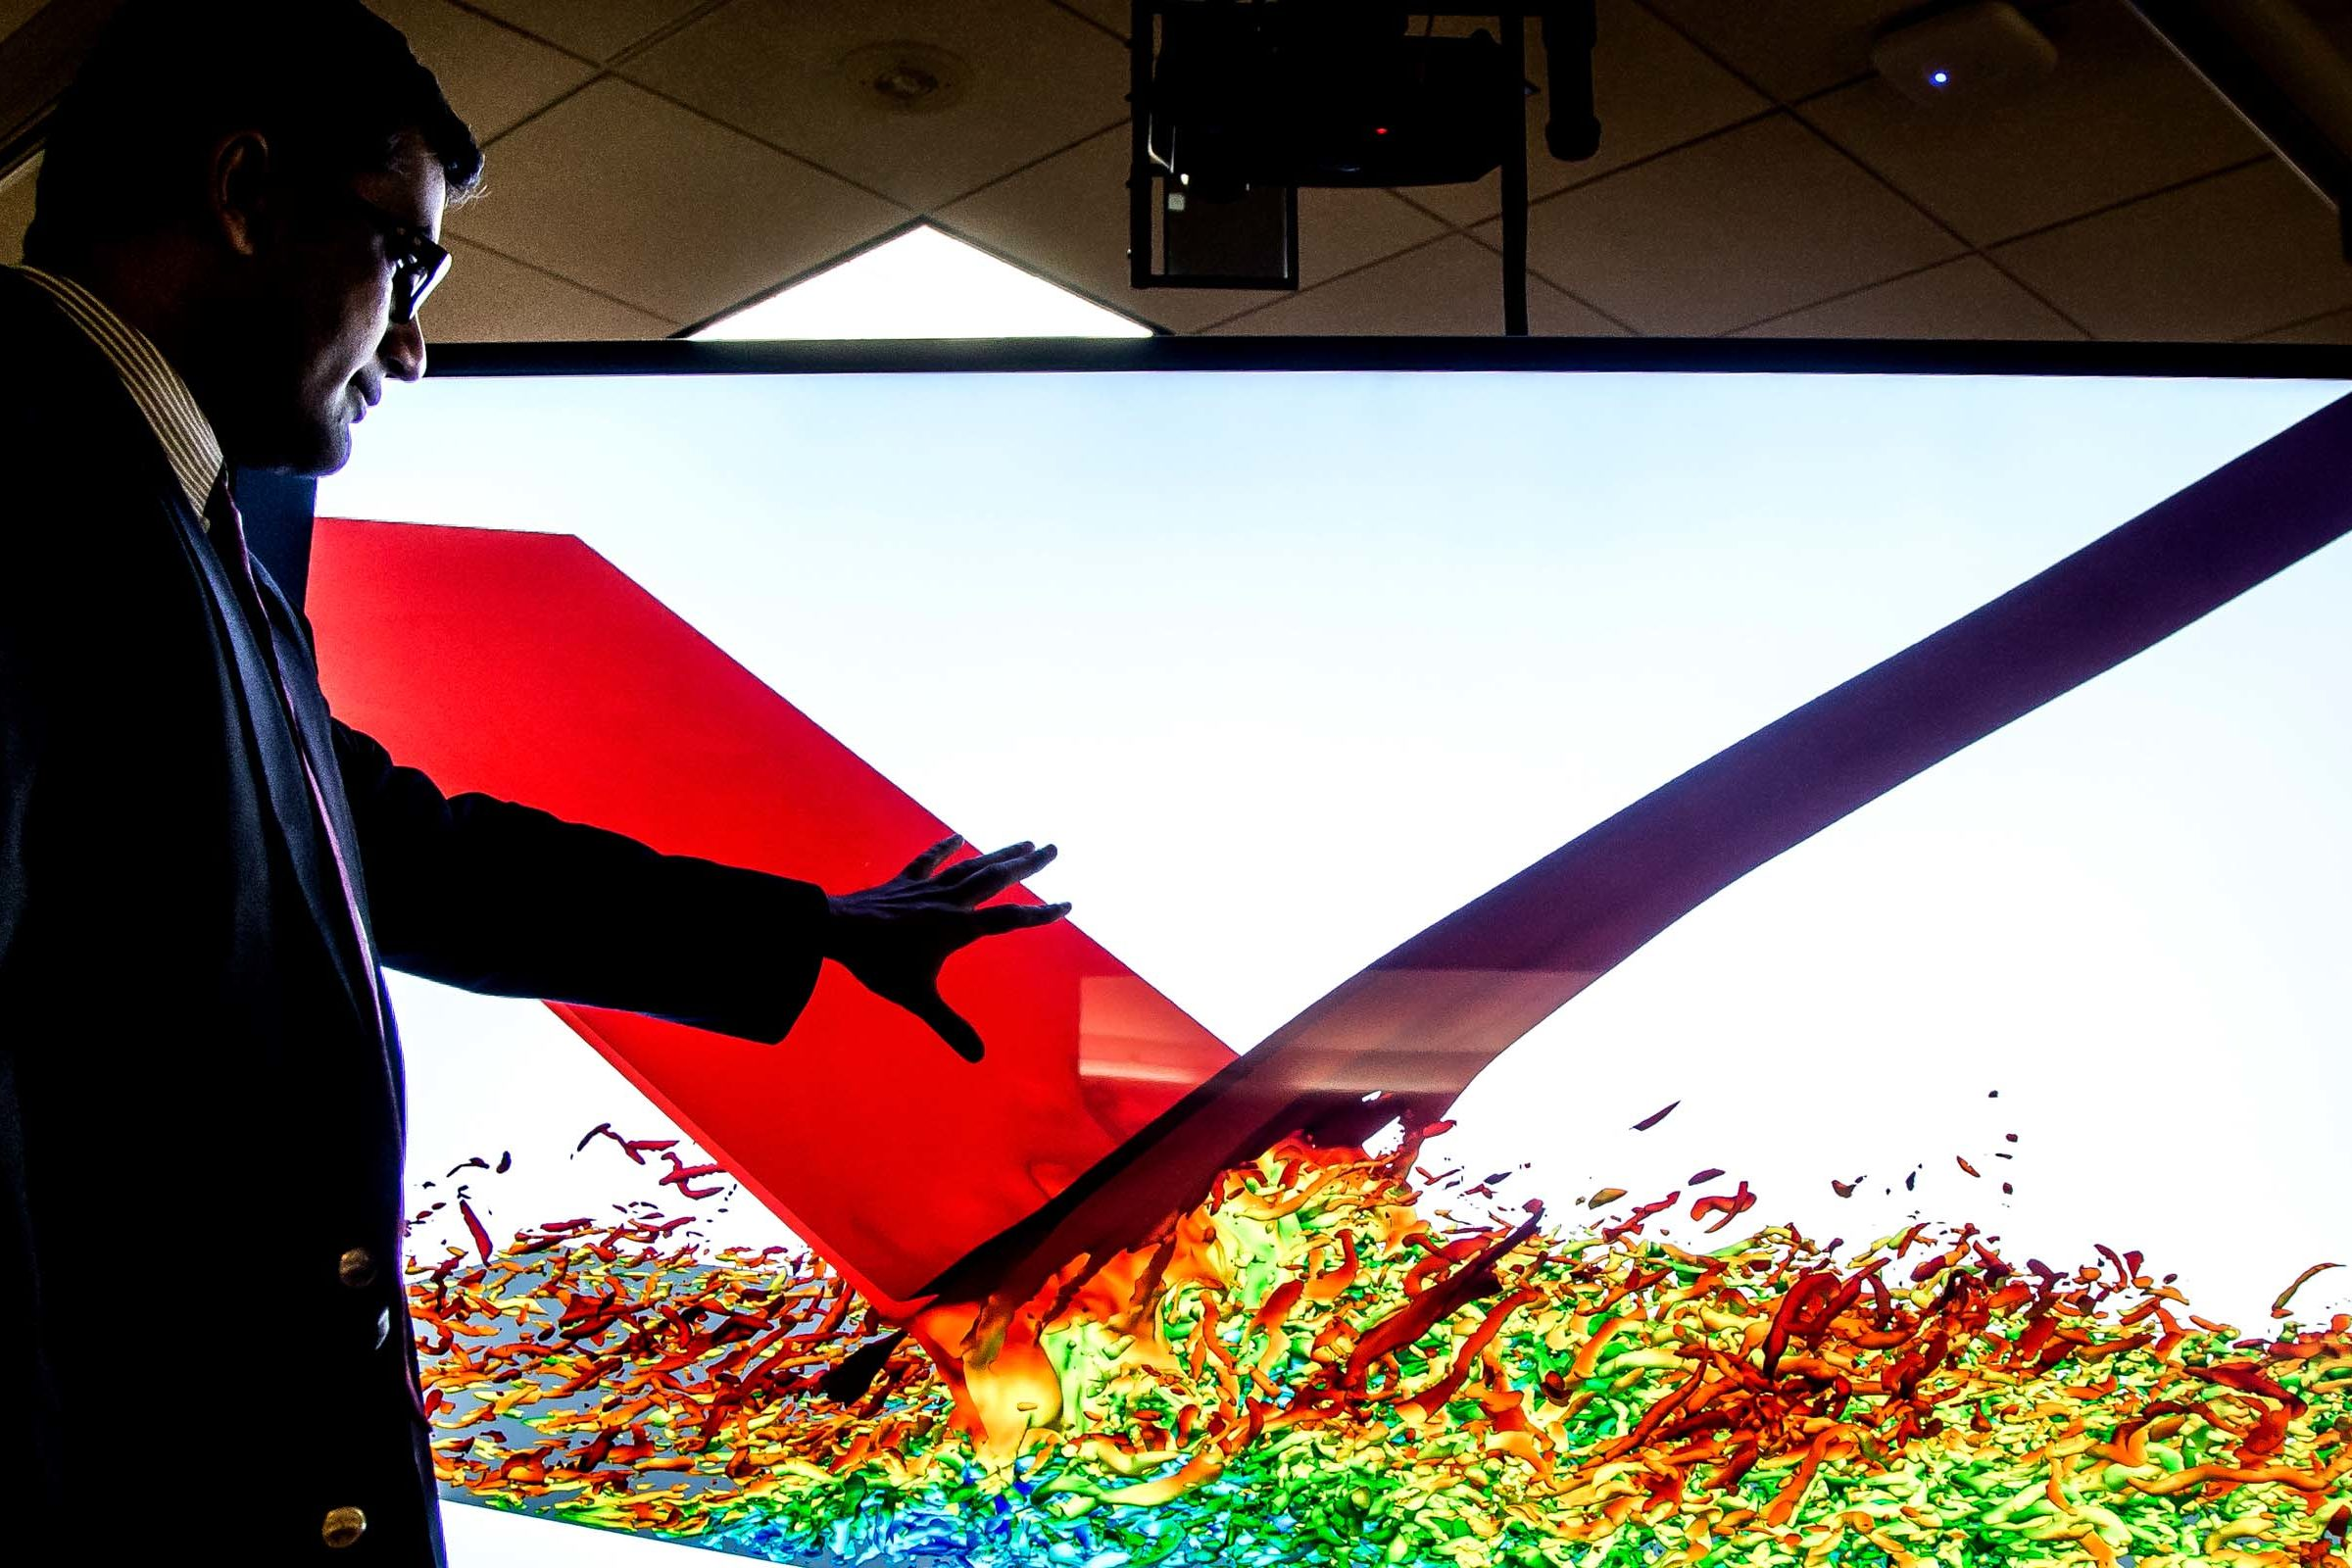 Professor Karthik Duraisamy reaches toward a large monitor showing a colorful data simulation